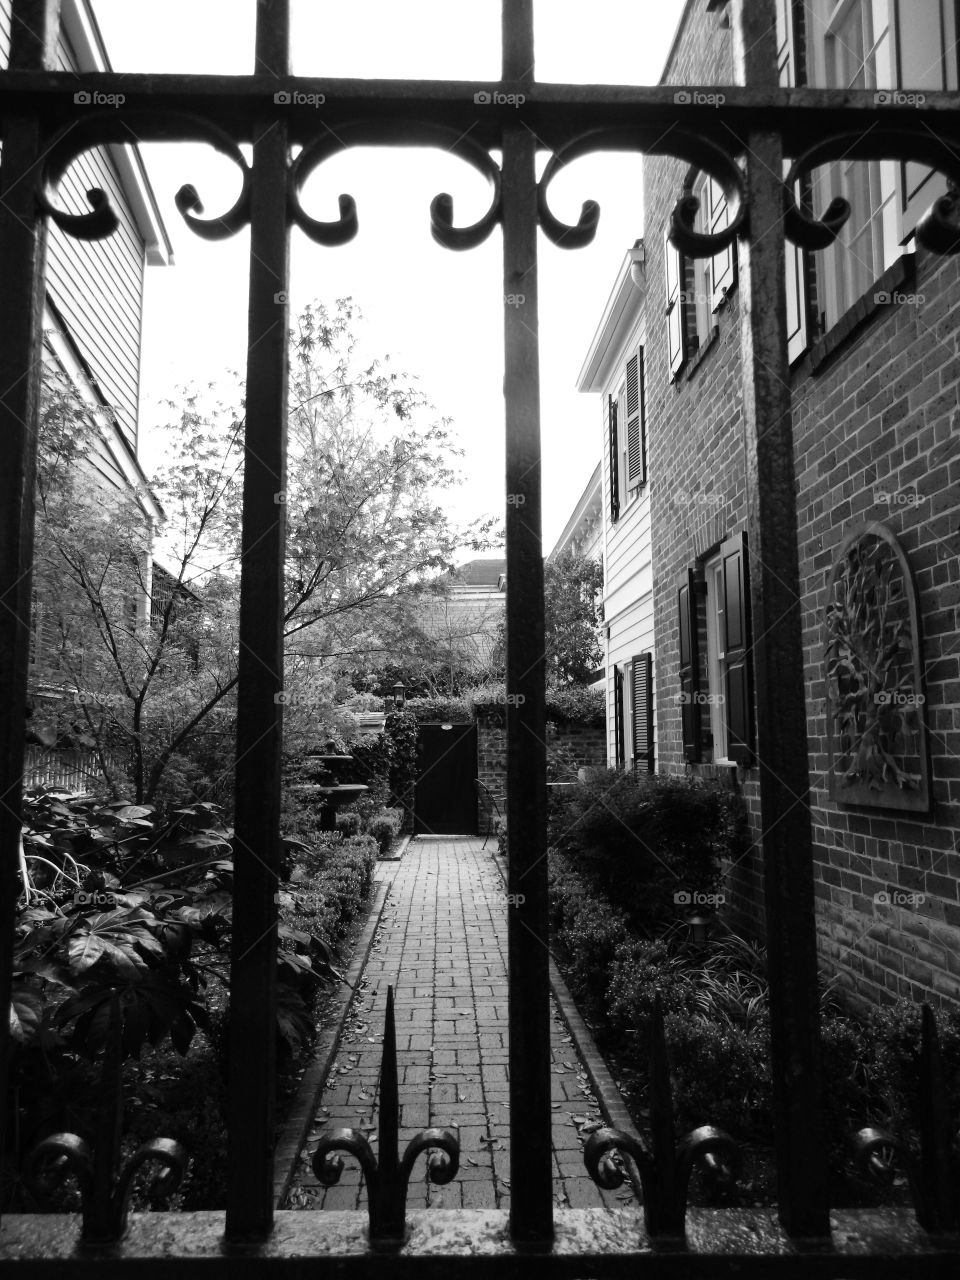 Happy Grey Story: Behind the iron gates! My Happy Grey Story photos shows cool, neutral,  and balanced color which              communicates some of the strength and mystery of black!